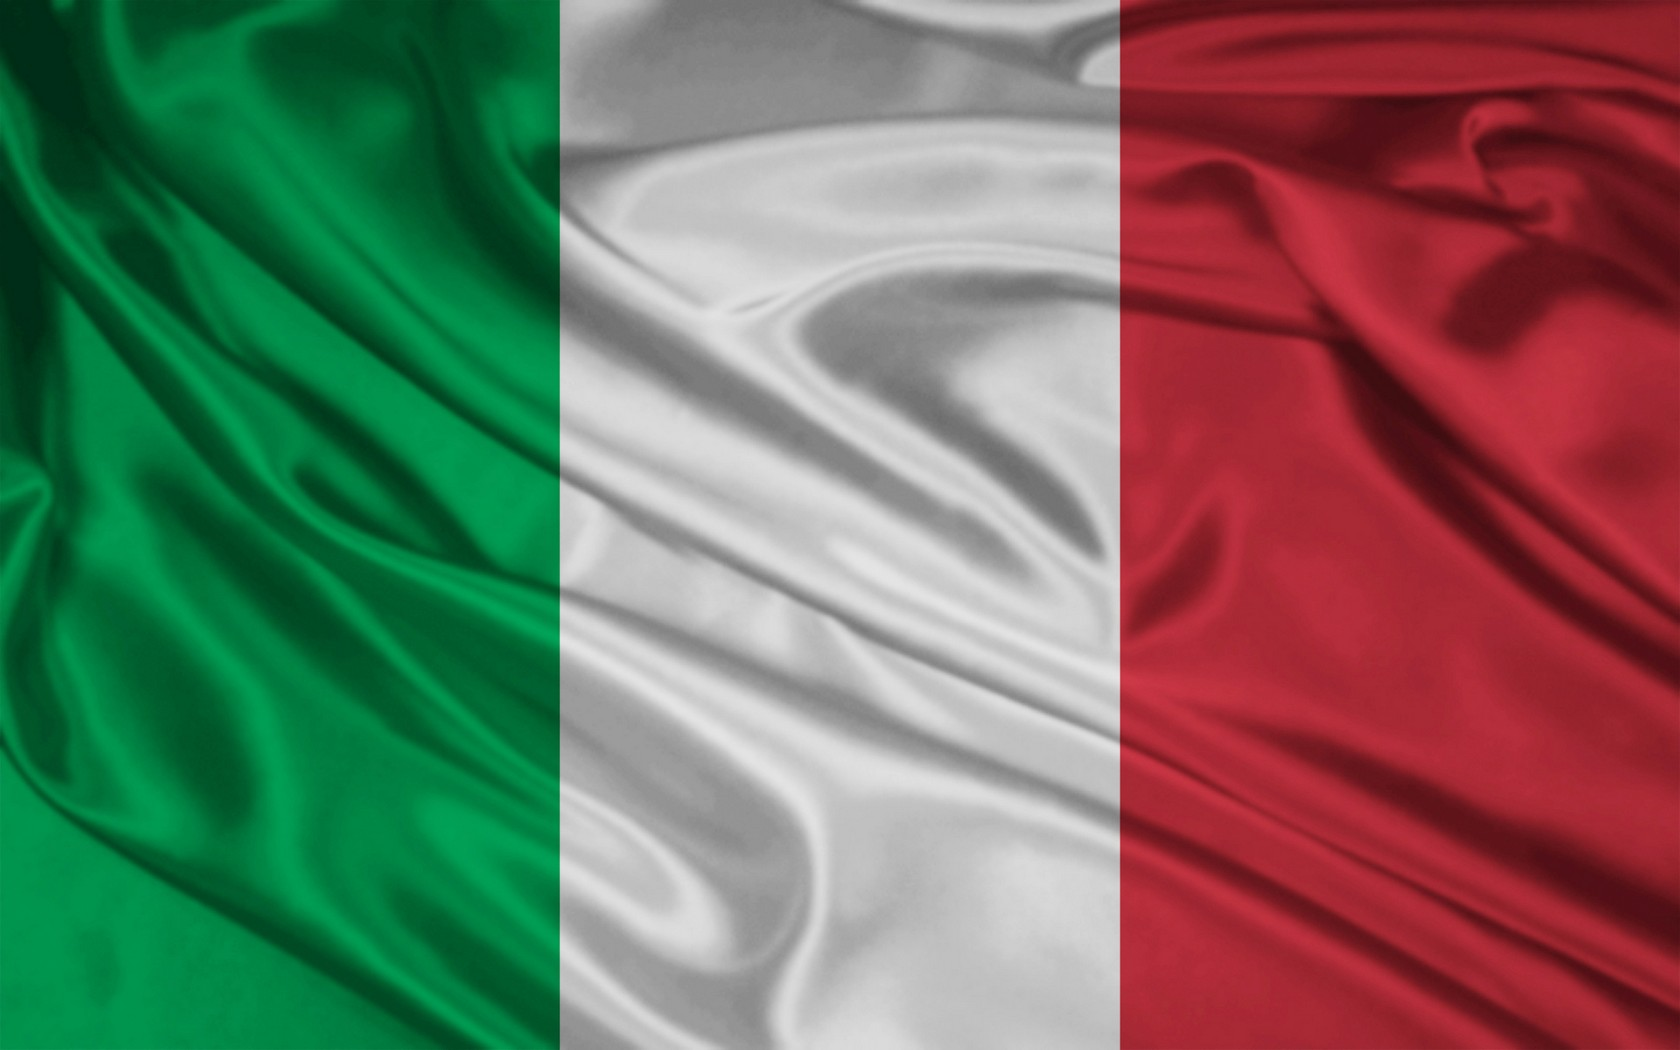 Italian Flag - Source: the net